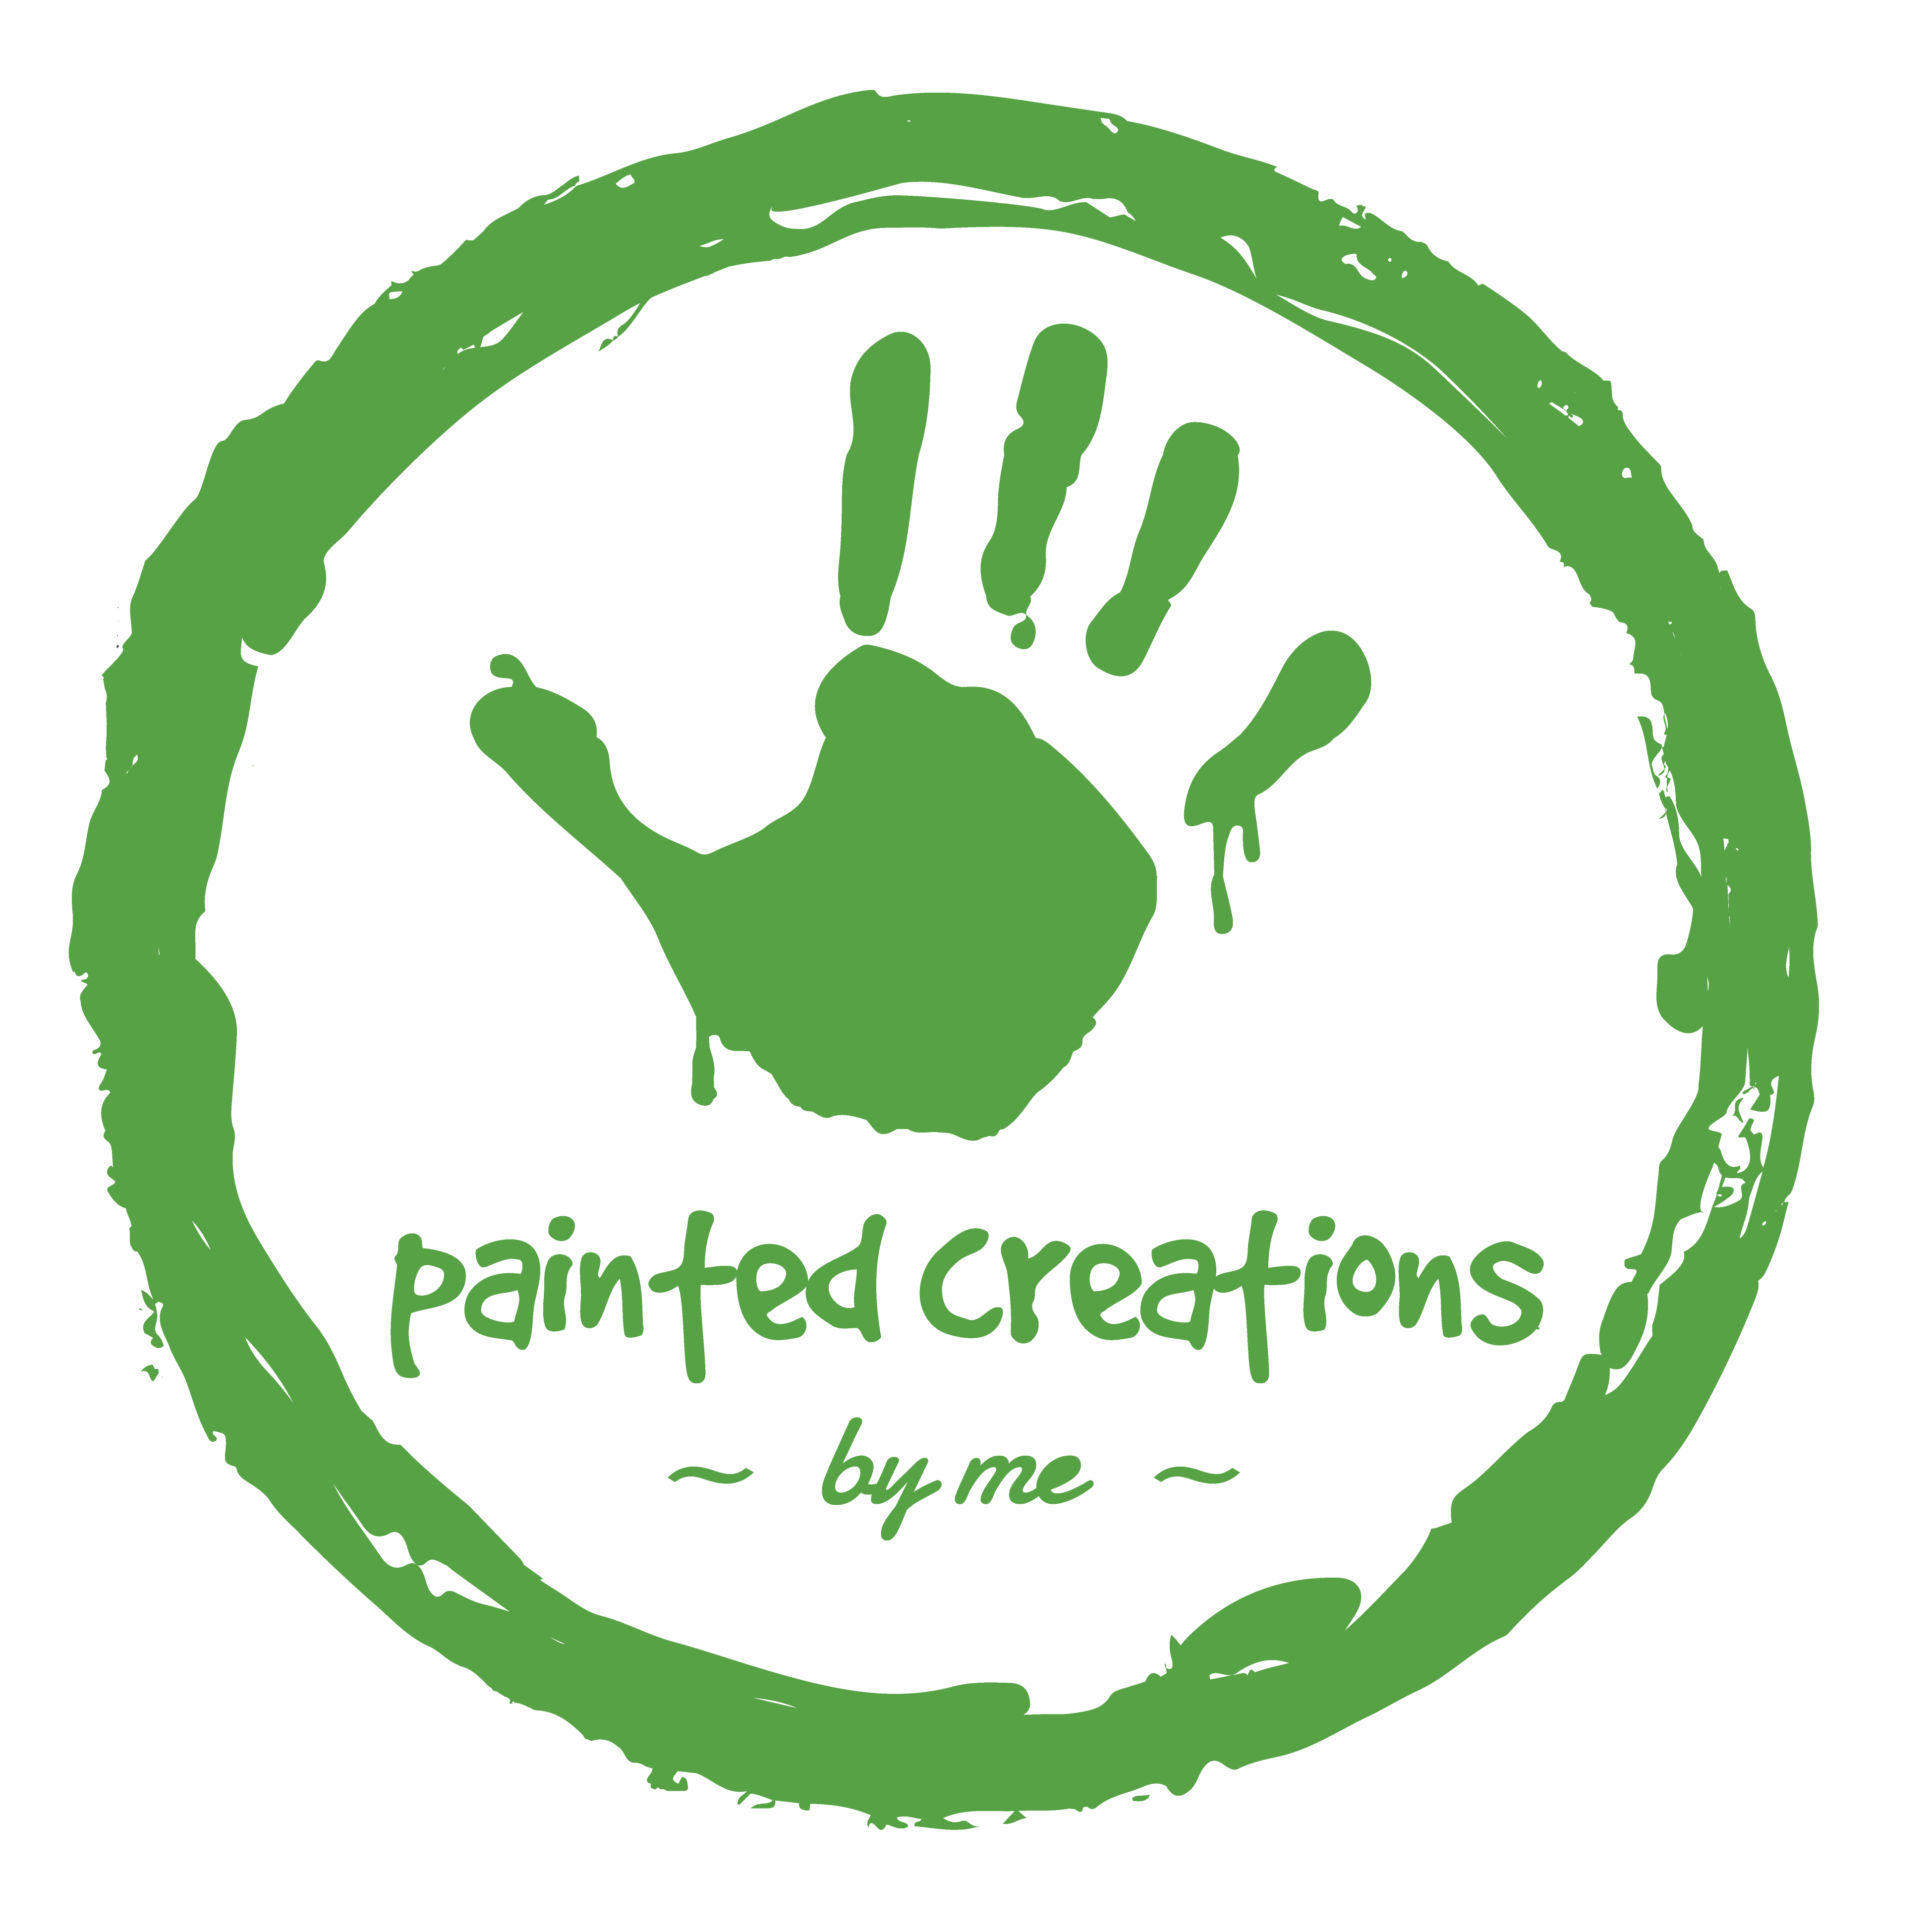 painted creations by me - green